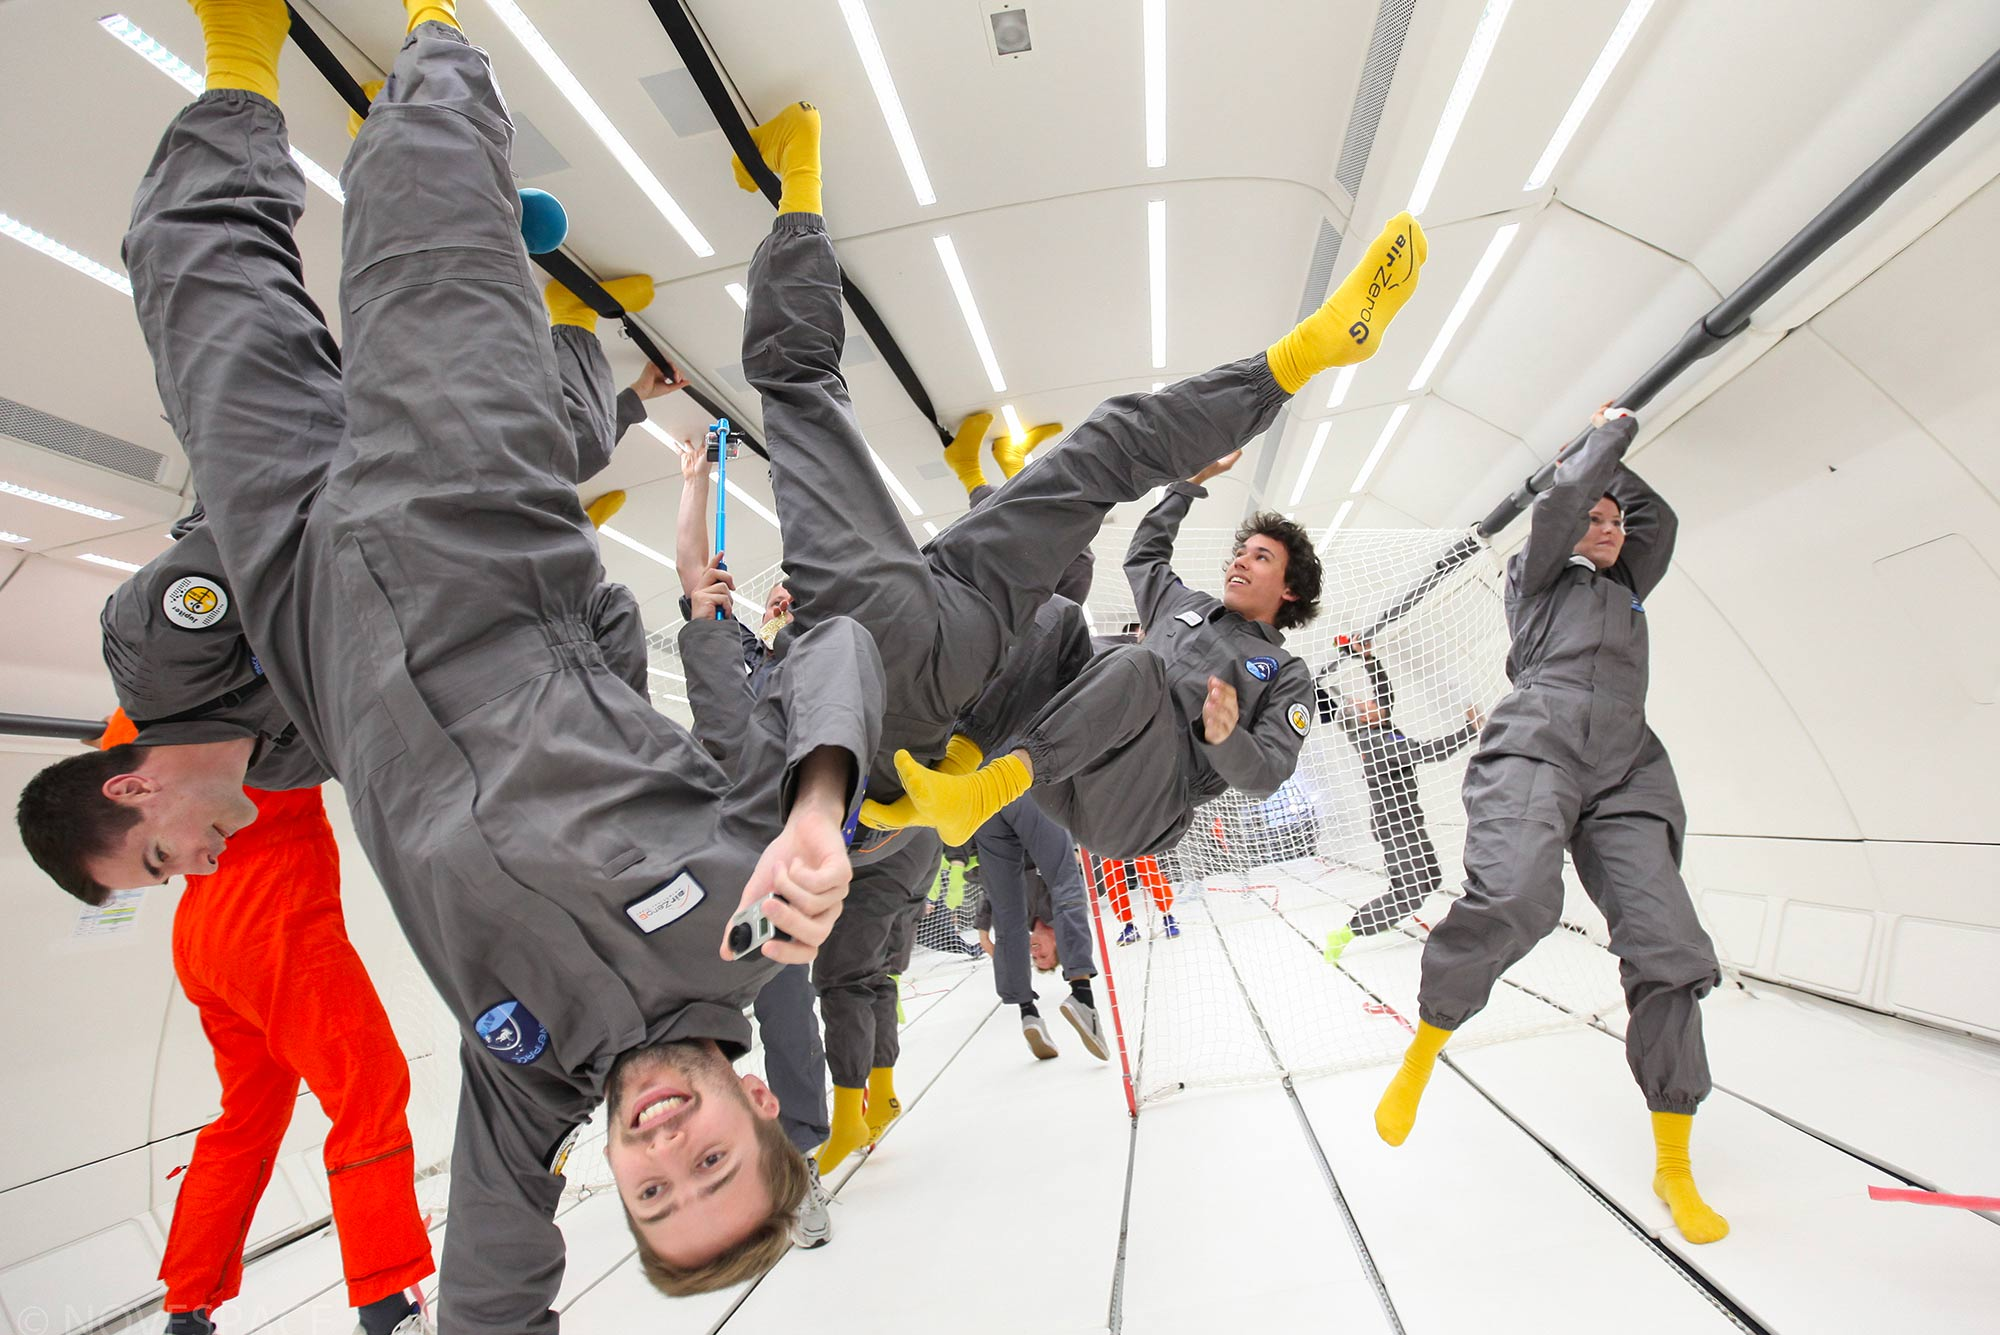 Zero-G - people flying up & down